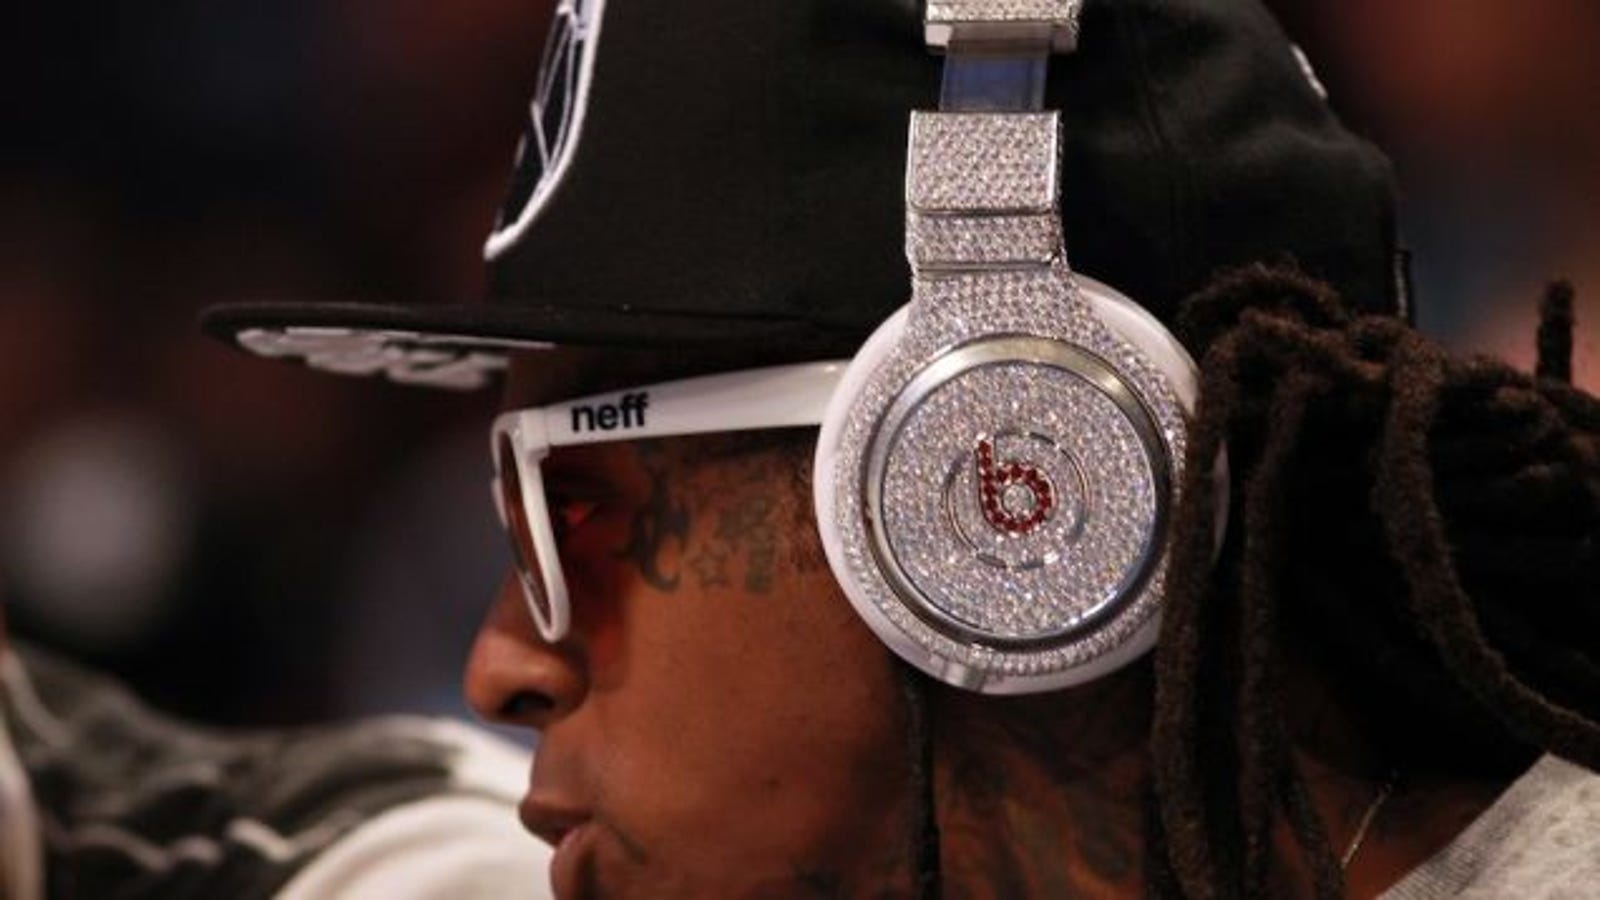 ear buds antangrassional - Report: Apple Is Getting Ready to Buy Beats for $3.2 Billion